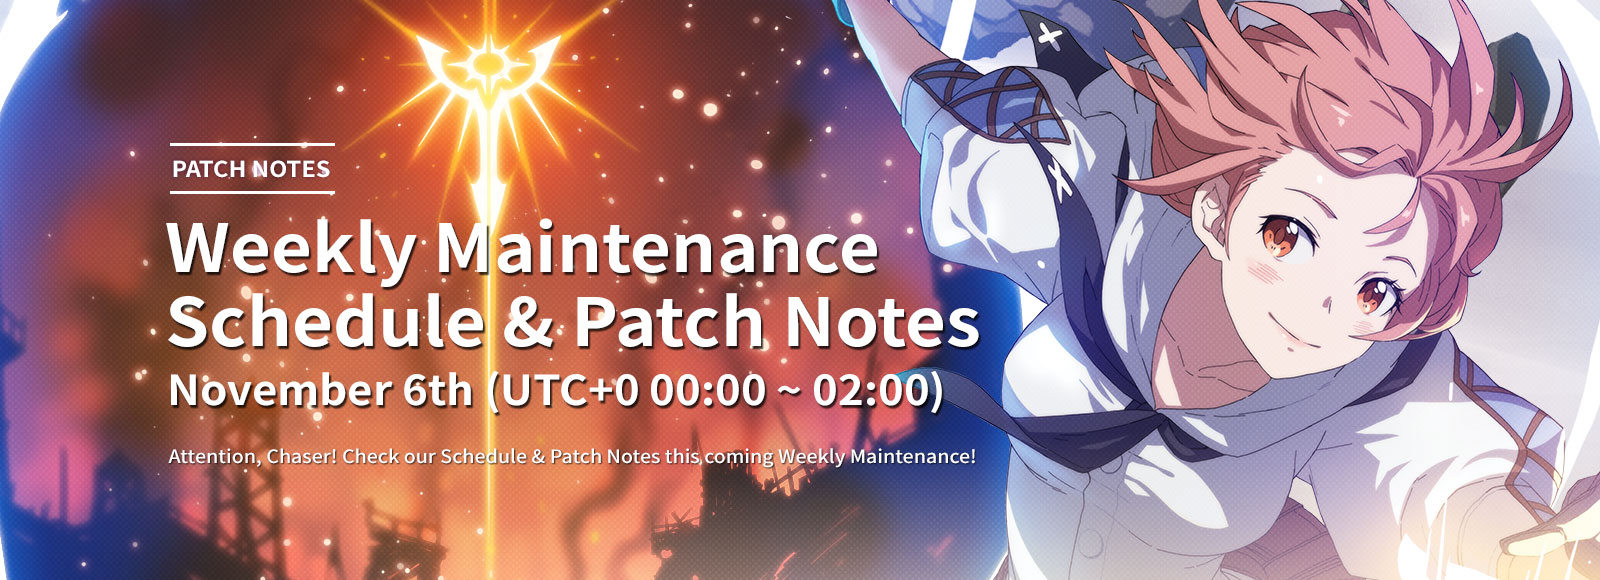 November 6th Weekly Maintenance Schedule & Patch Notes